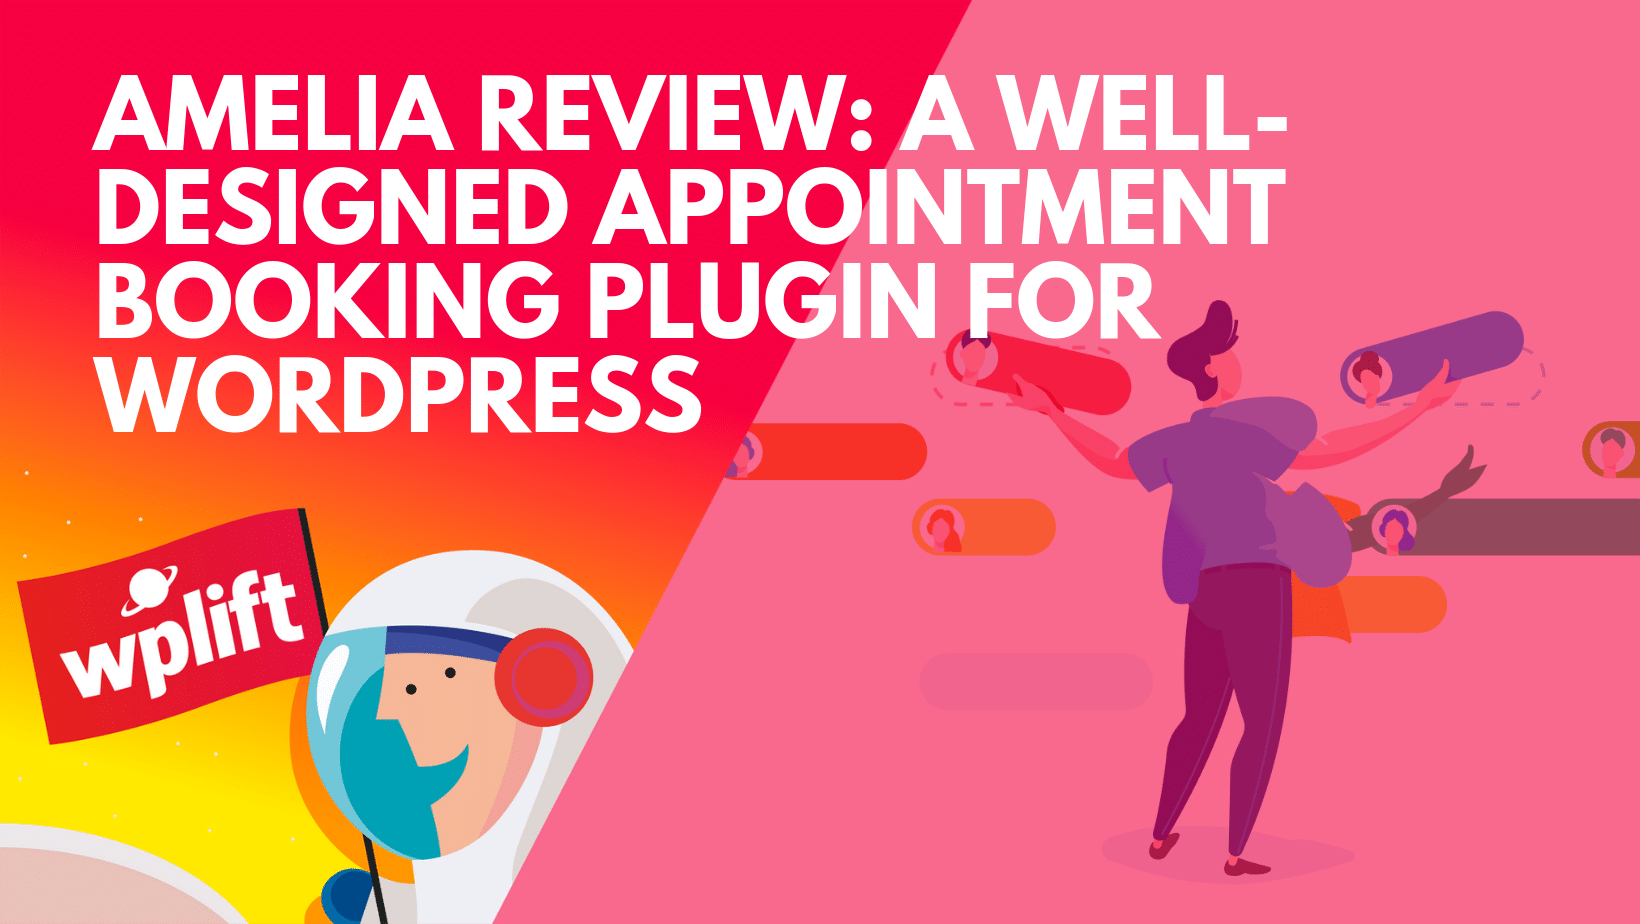 Amelia Review: A Well-Designed Appointment Booking Plugin For WordPress